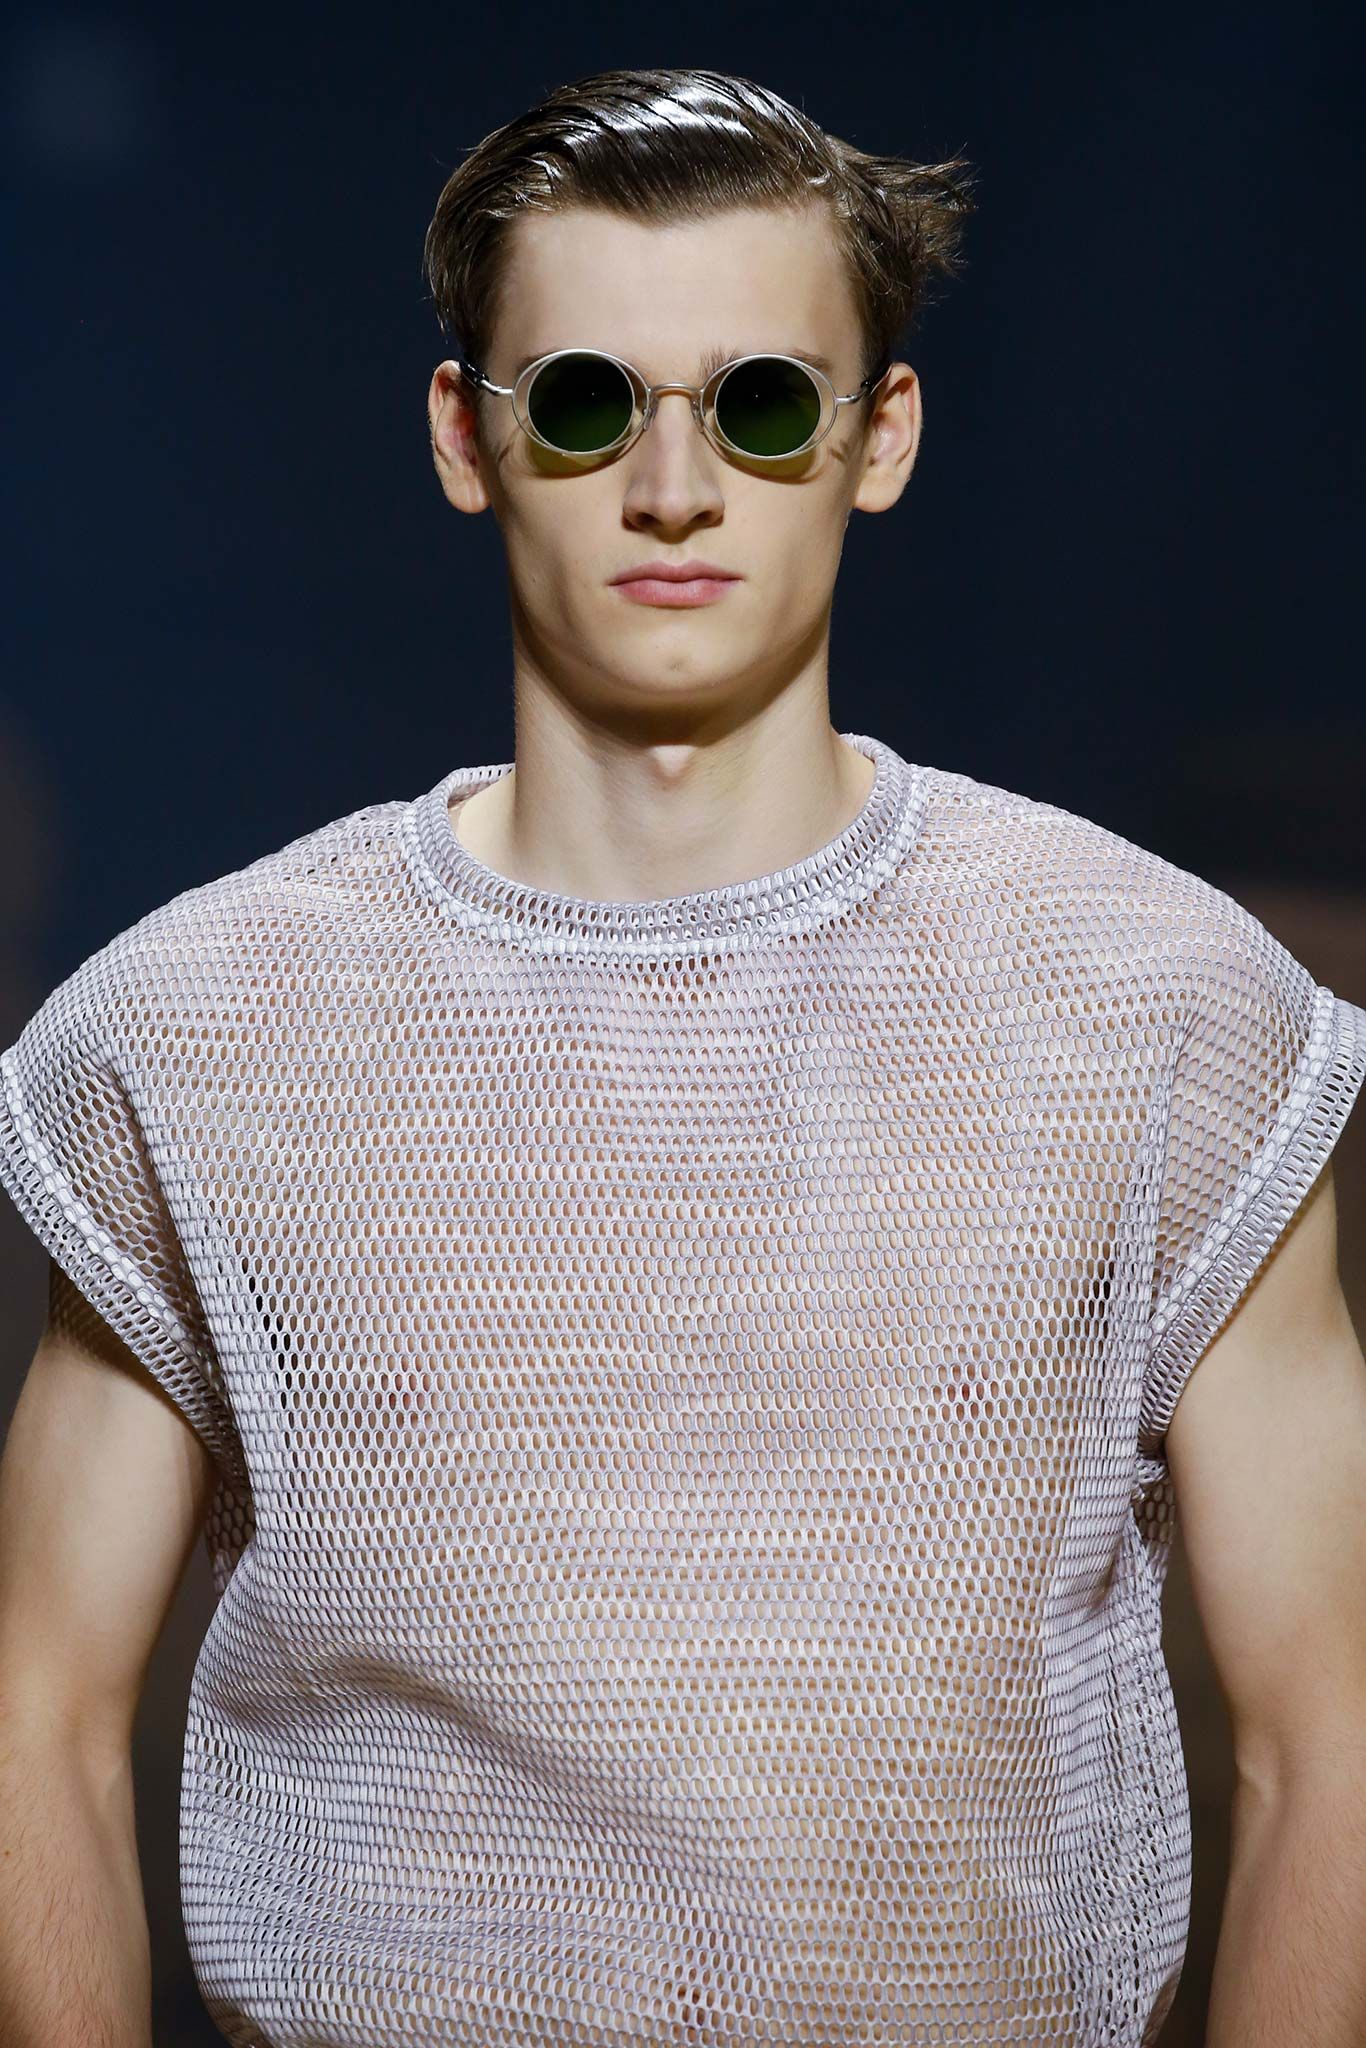 Kenzo - Spring 2016 Menswear - Look 82 of 90?url=http://www.style.com/slideshows/fashion-shows/spring-2016-menswear/kenzo/details/82